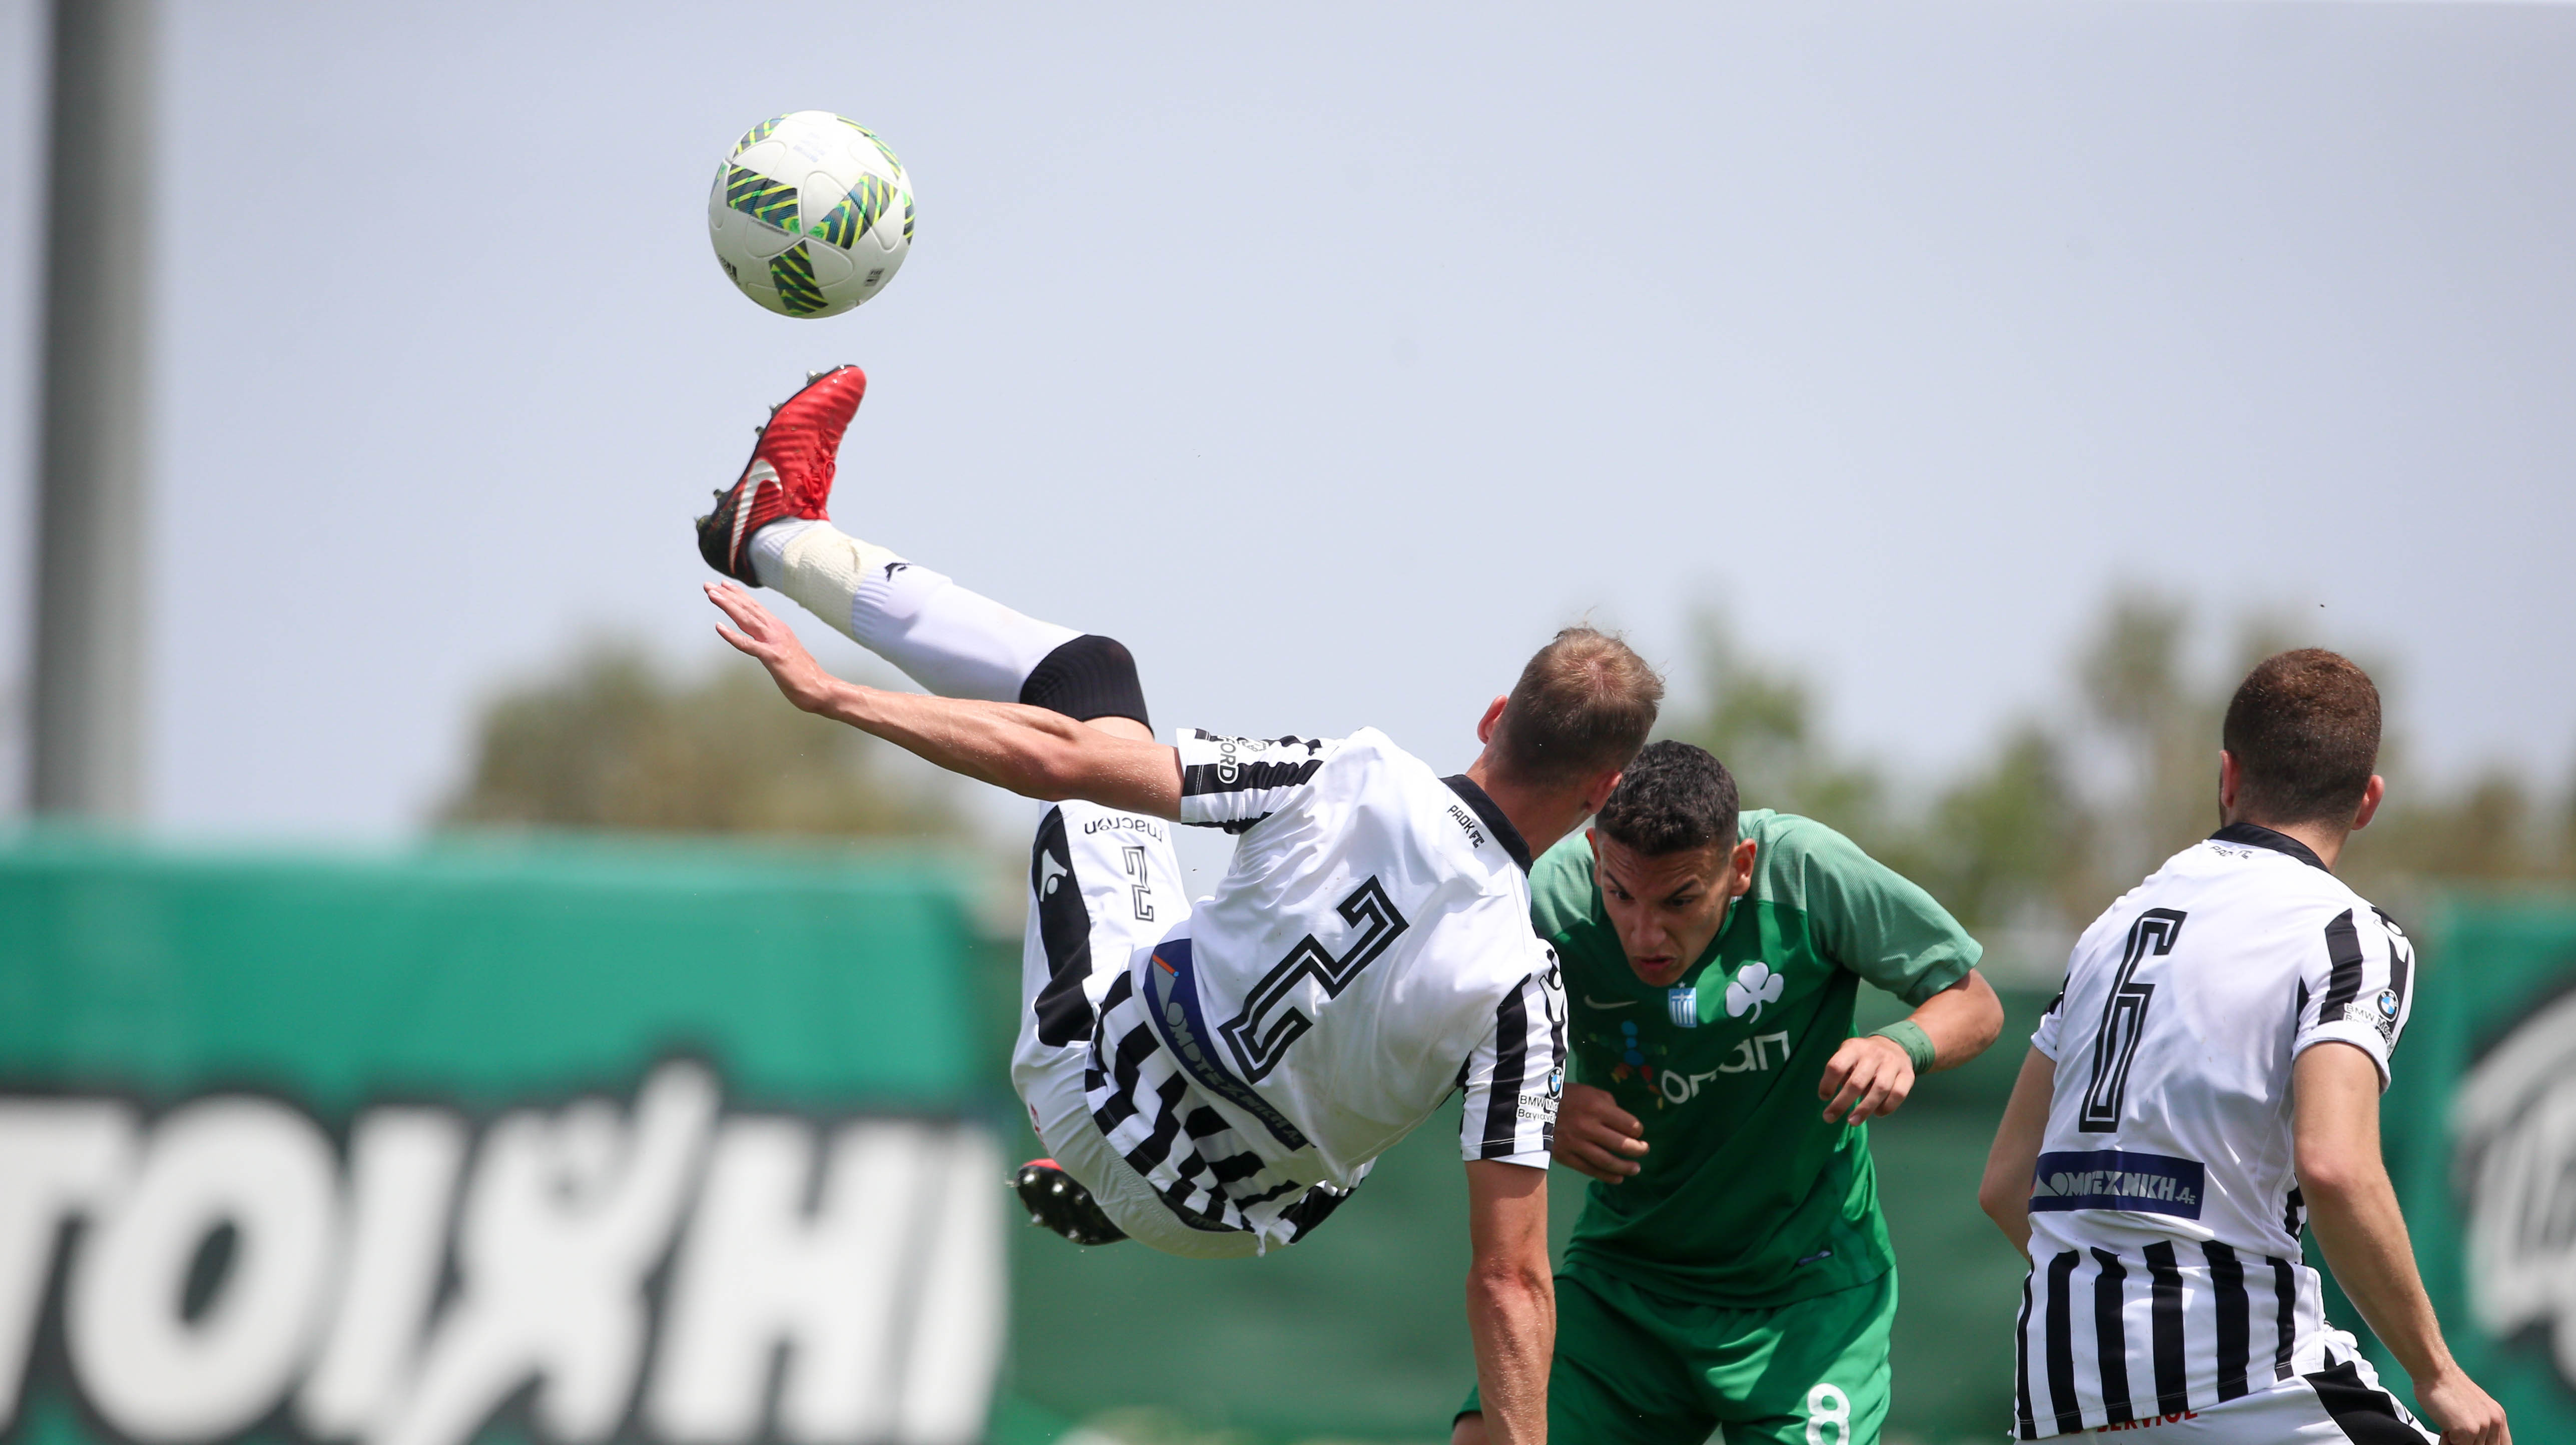 Panathinaikos U20 – PAOK U20: Highlights